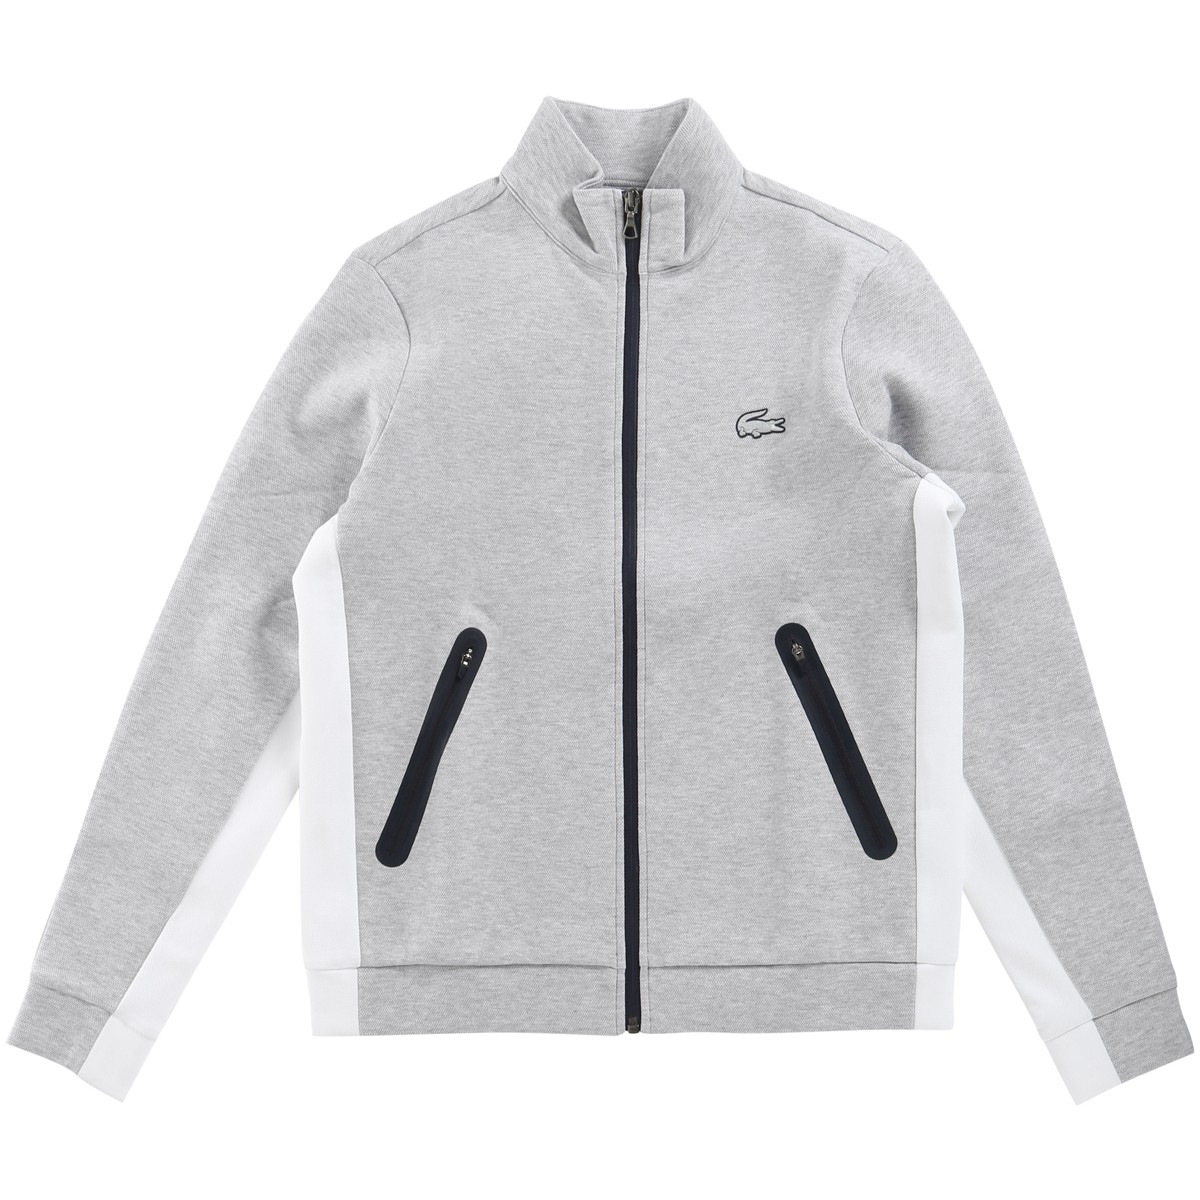 WOMEN'S LACOSTE LIFESTYLE JACKET